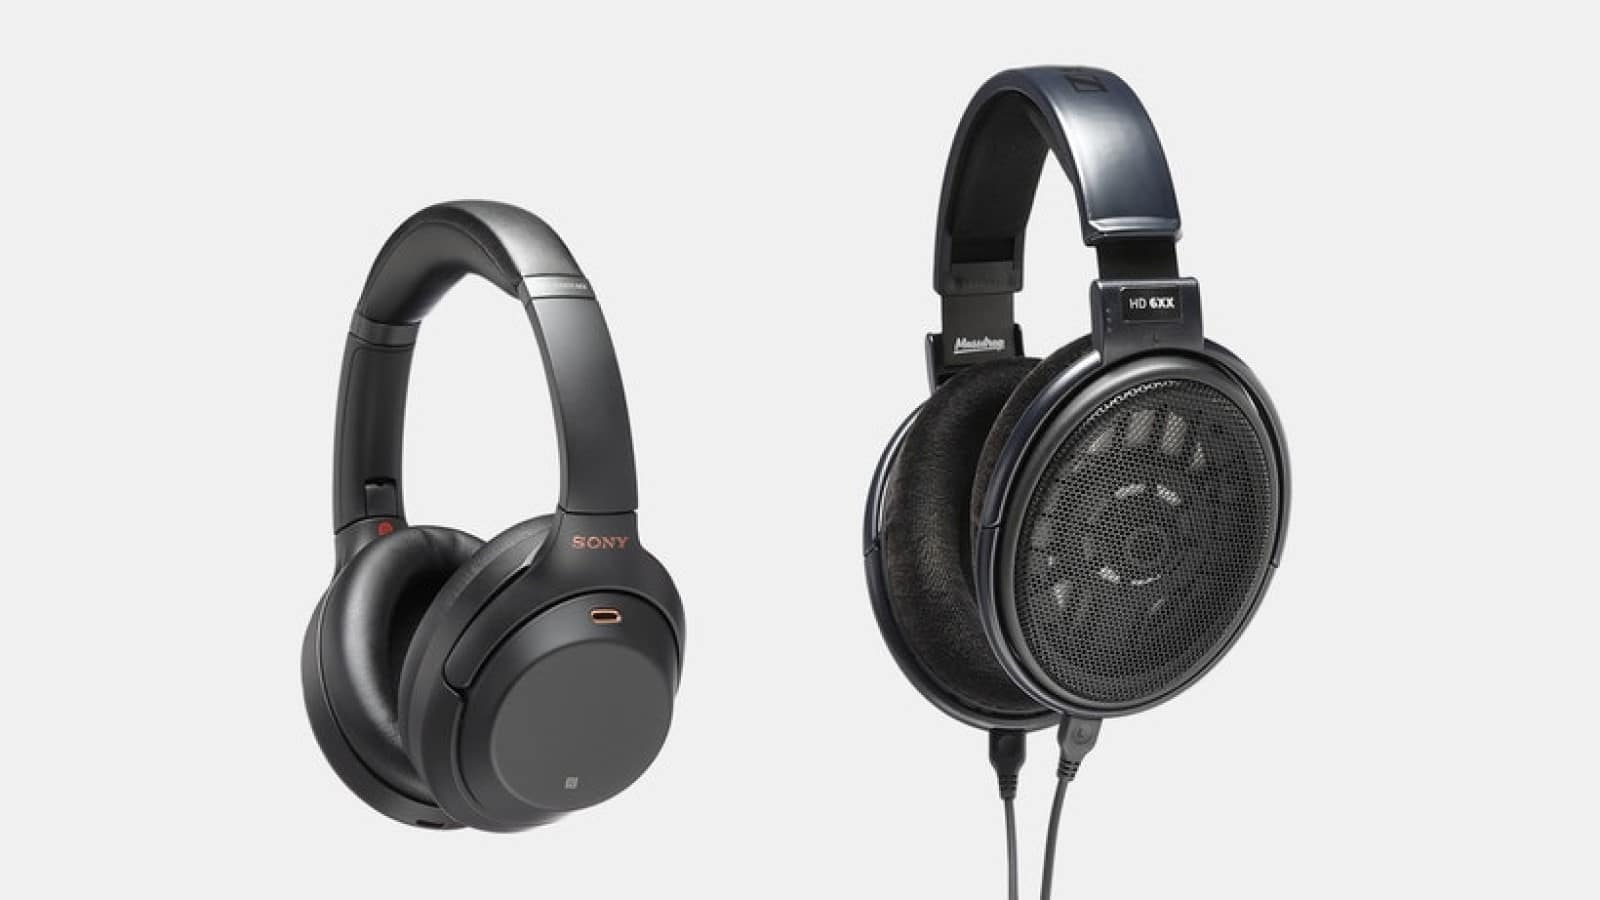 sony and sennheiser headphones